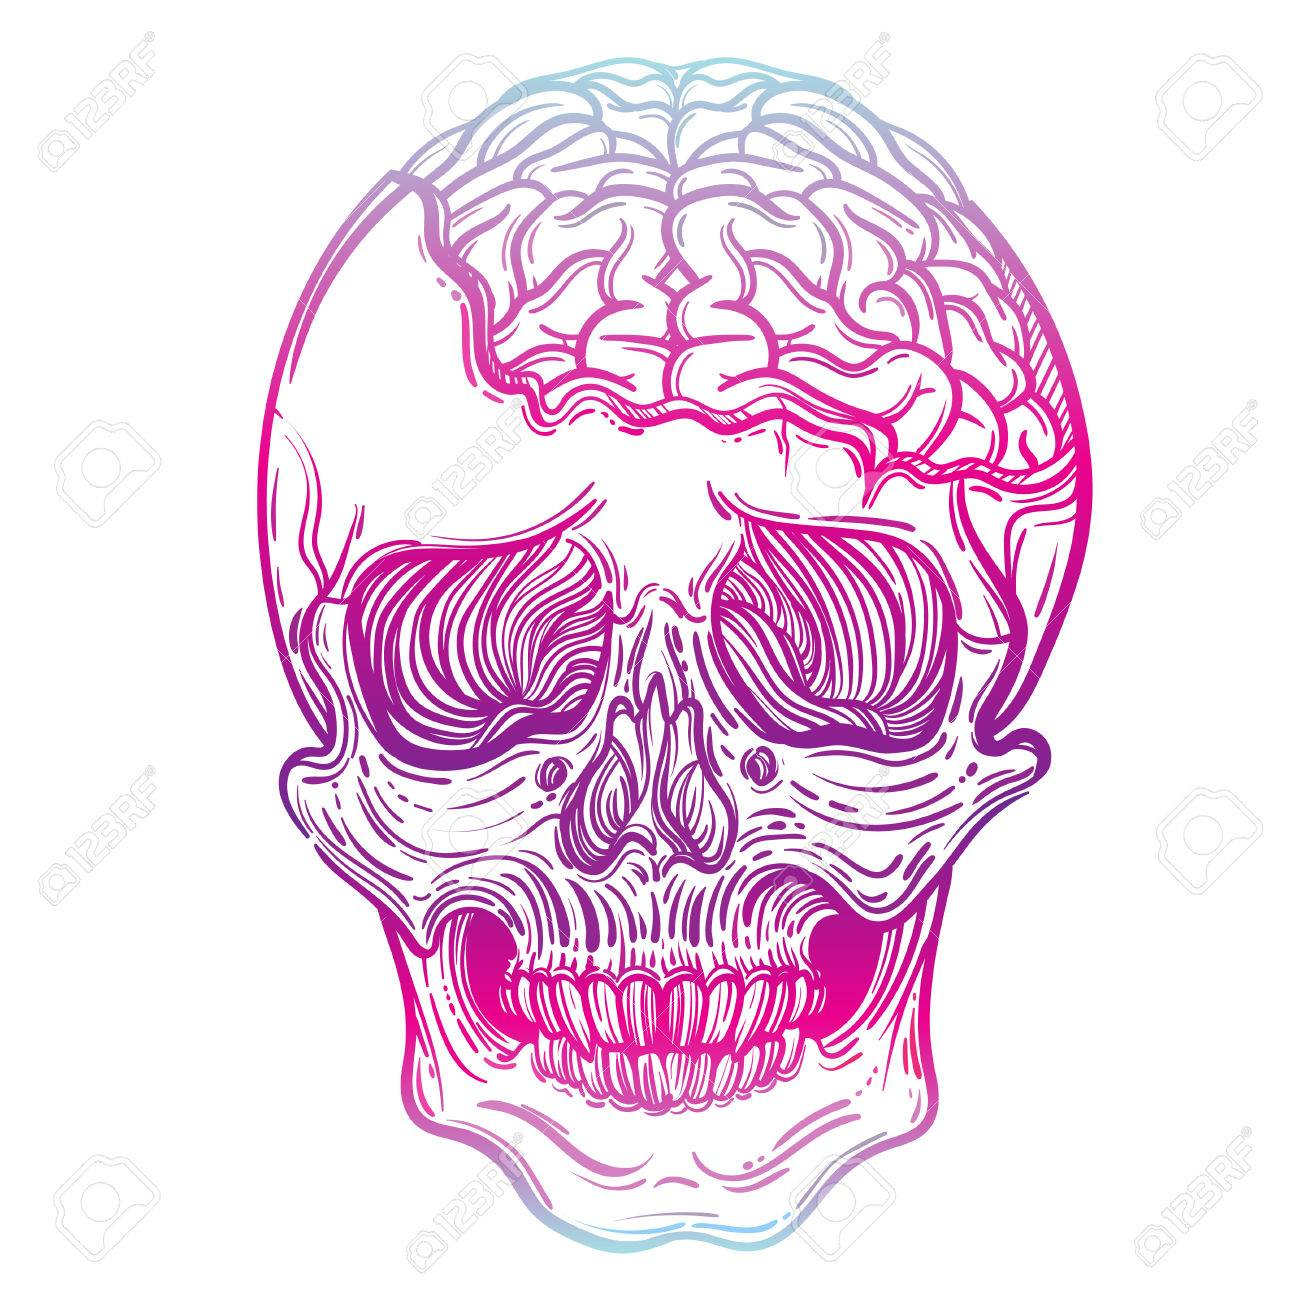 1300x1300 Vector Illustration With A Human Skull And Brains. Gothic Brutal